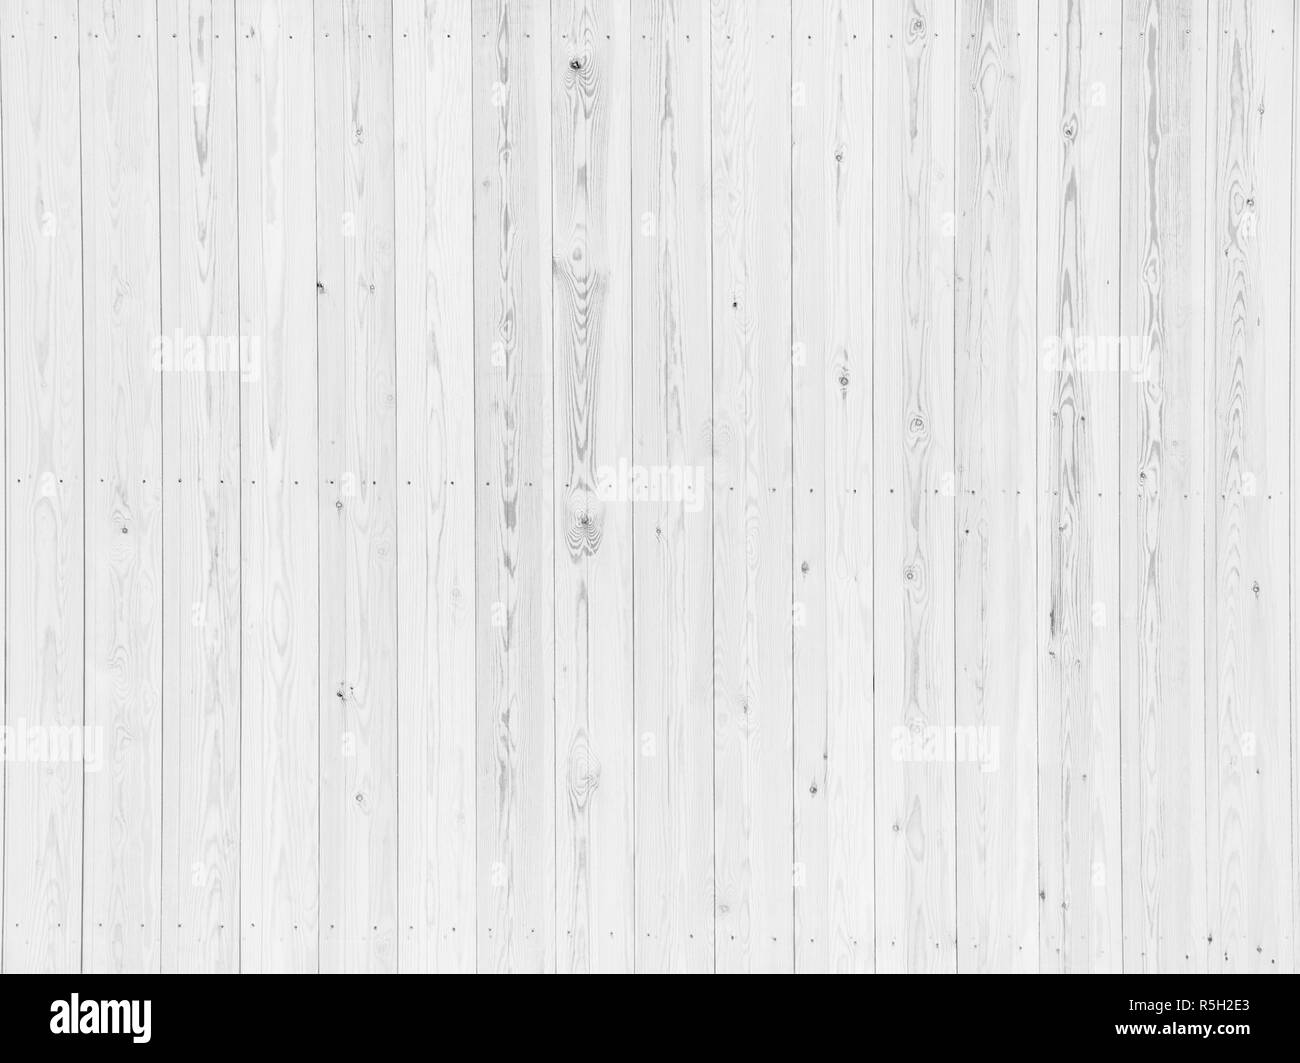 Aged Board with a gray tint with vertical lines - Stock Image